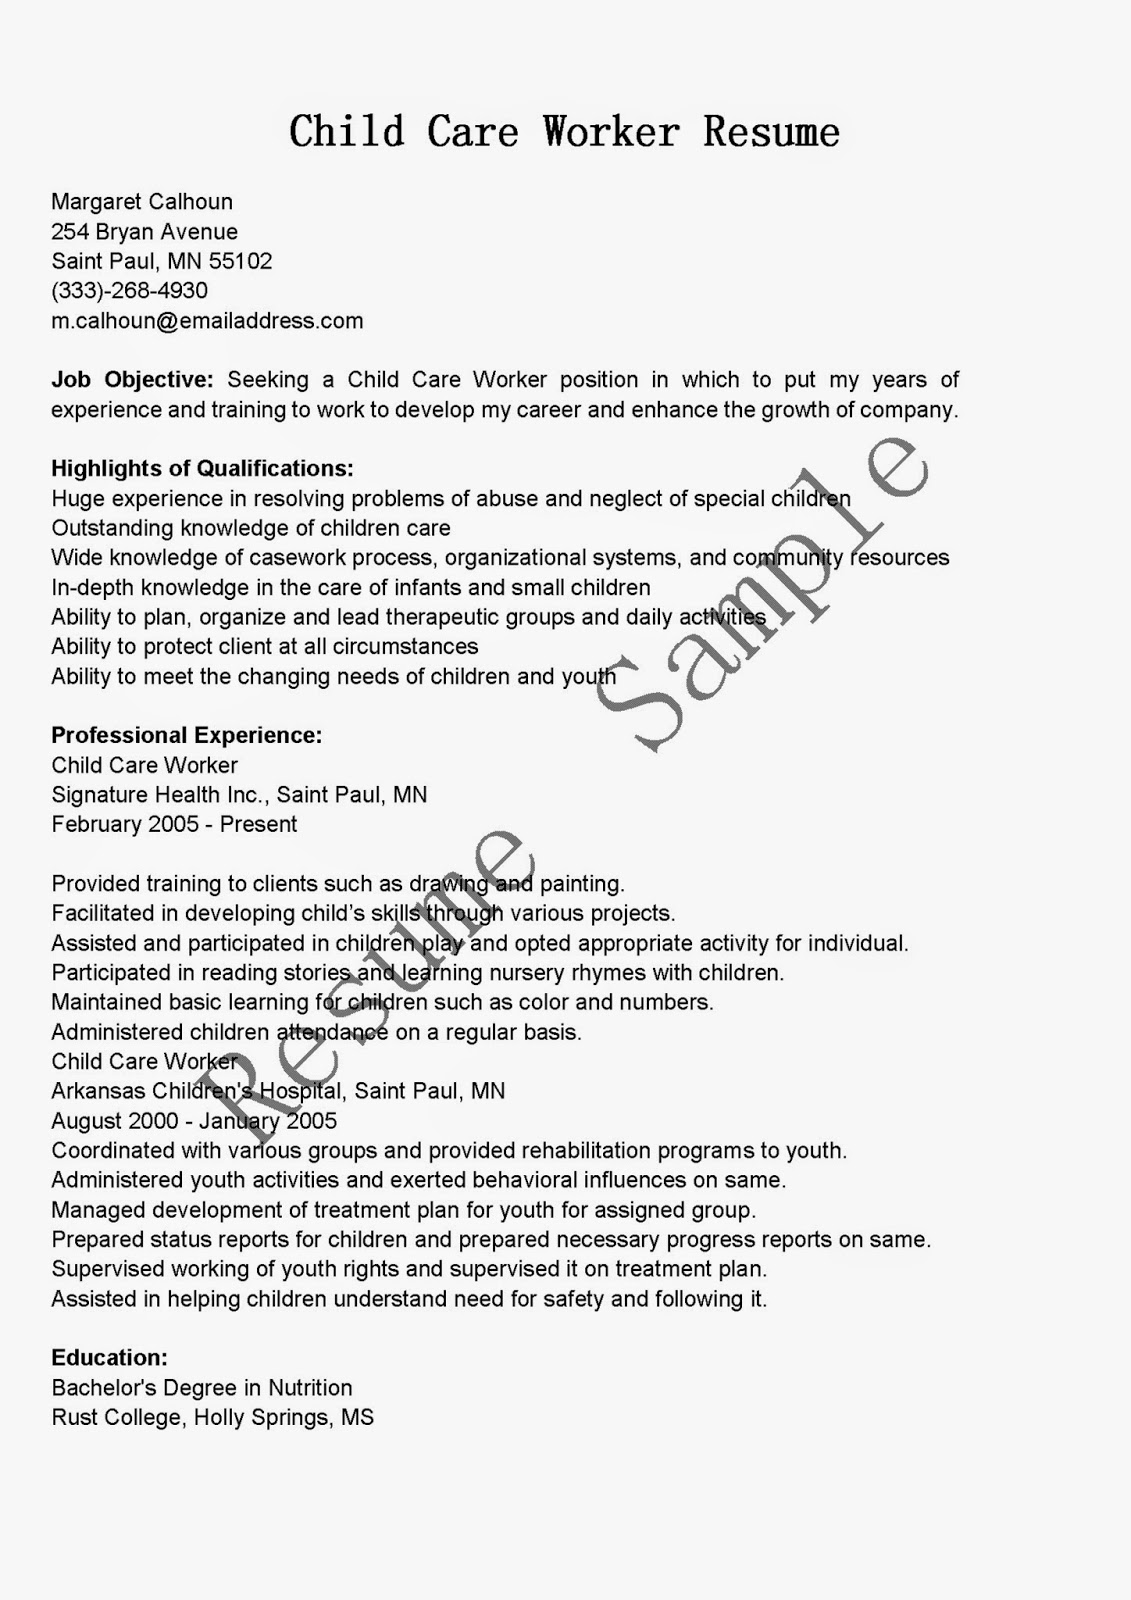 Childcare Worker Resume Resume Samples Child Care Worker Resume Sample